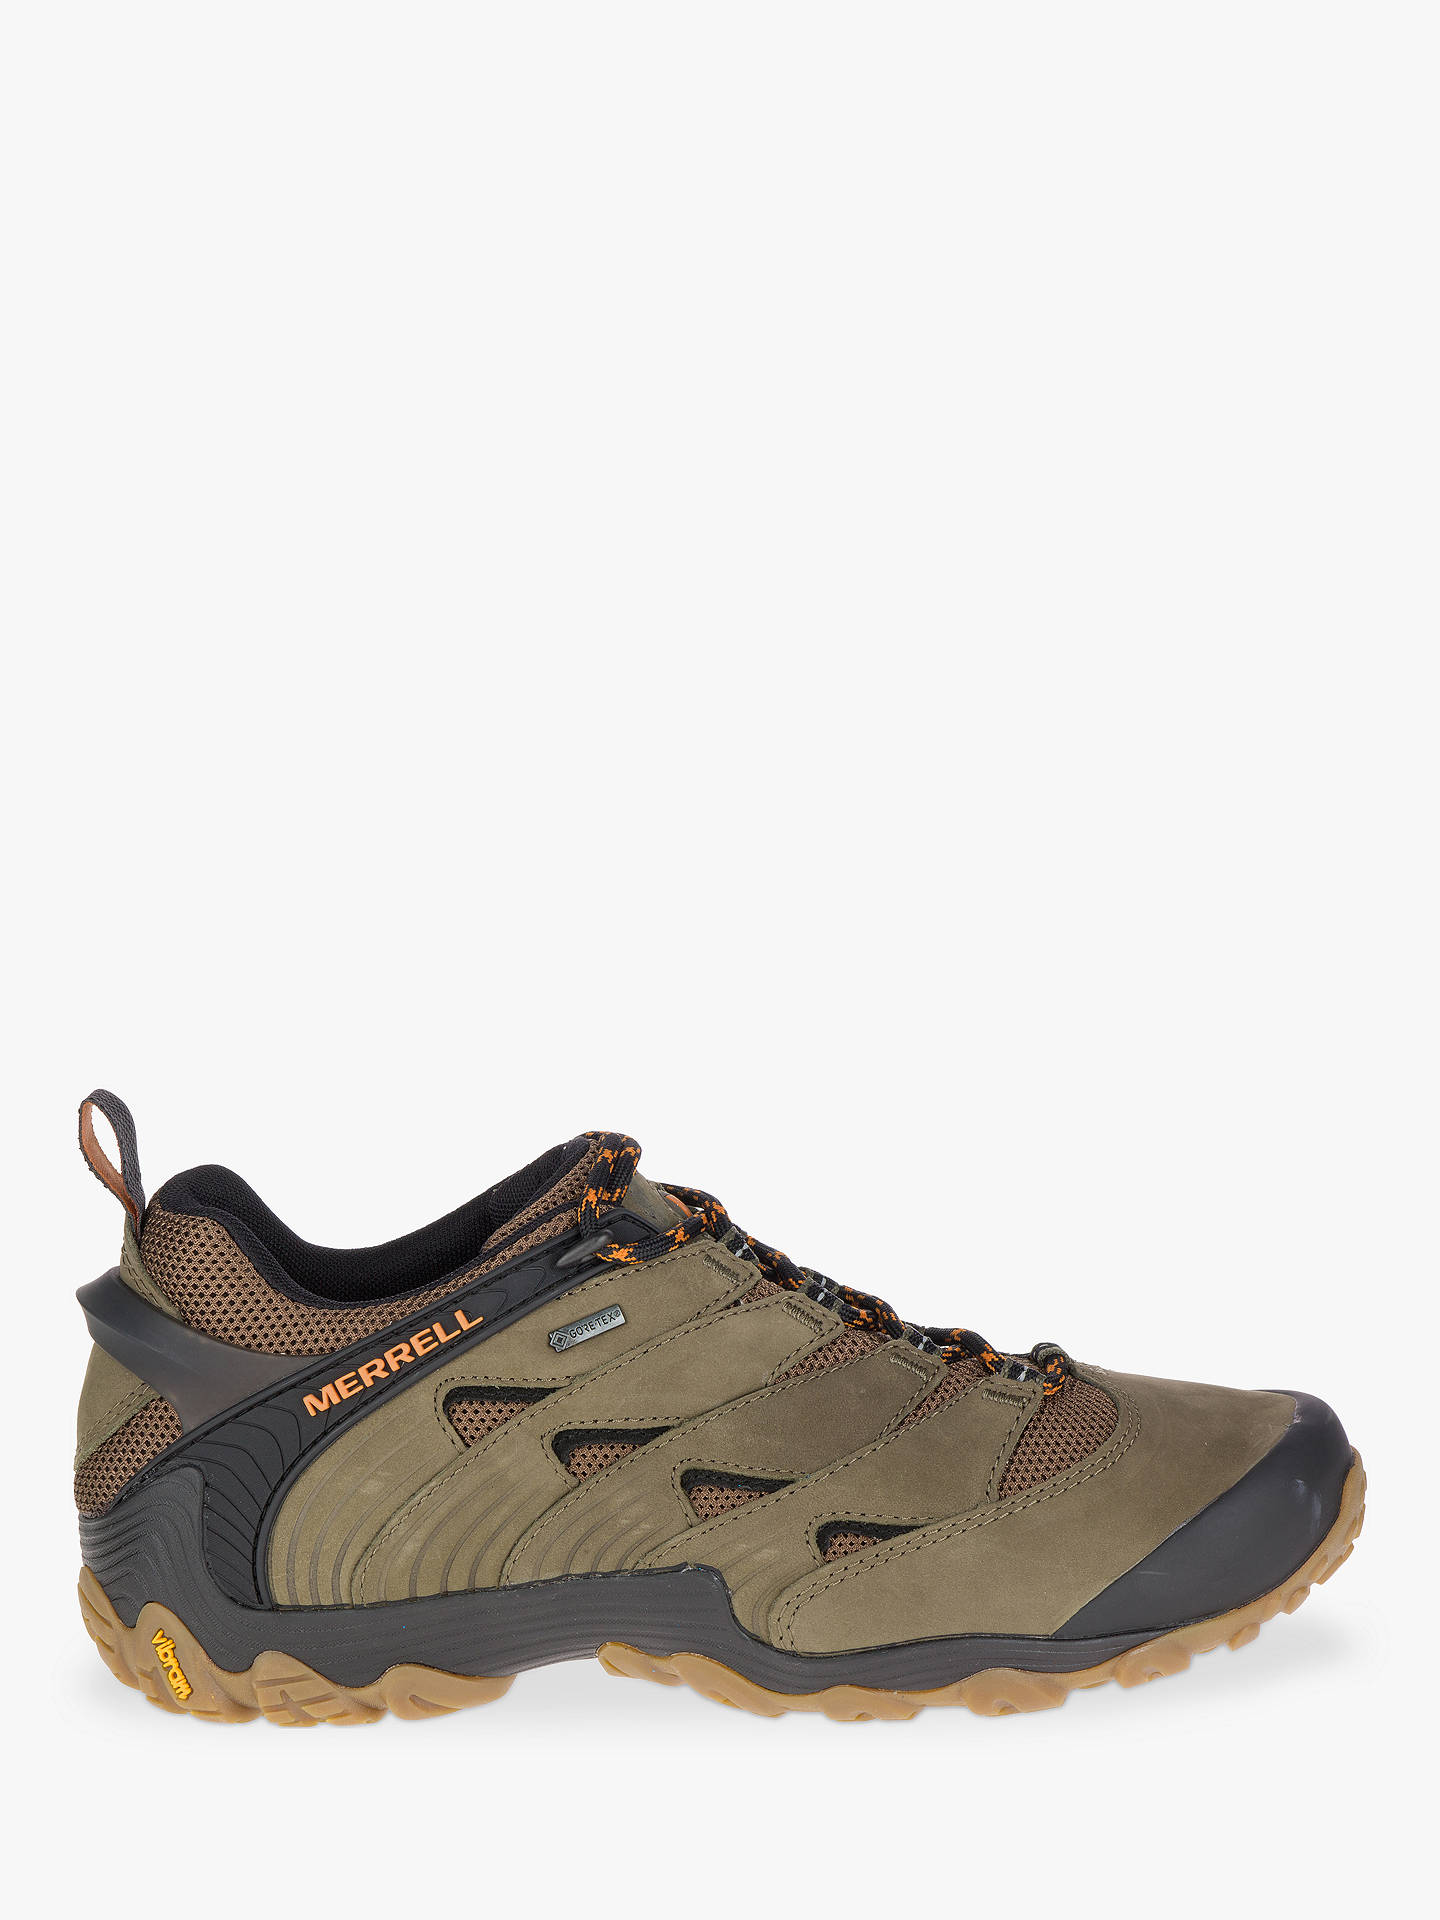 BuyMerrell Chameleon 7 GORE-TEX Men's Hiking Shoes, Taupe, 7 Online at johnlewis.com